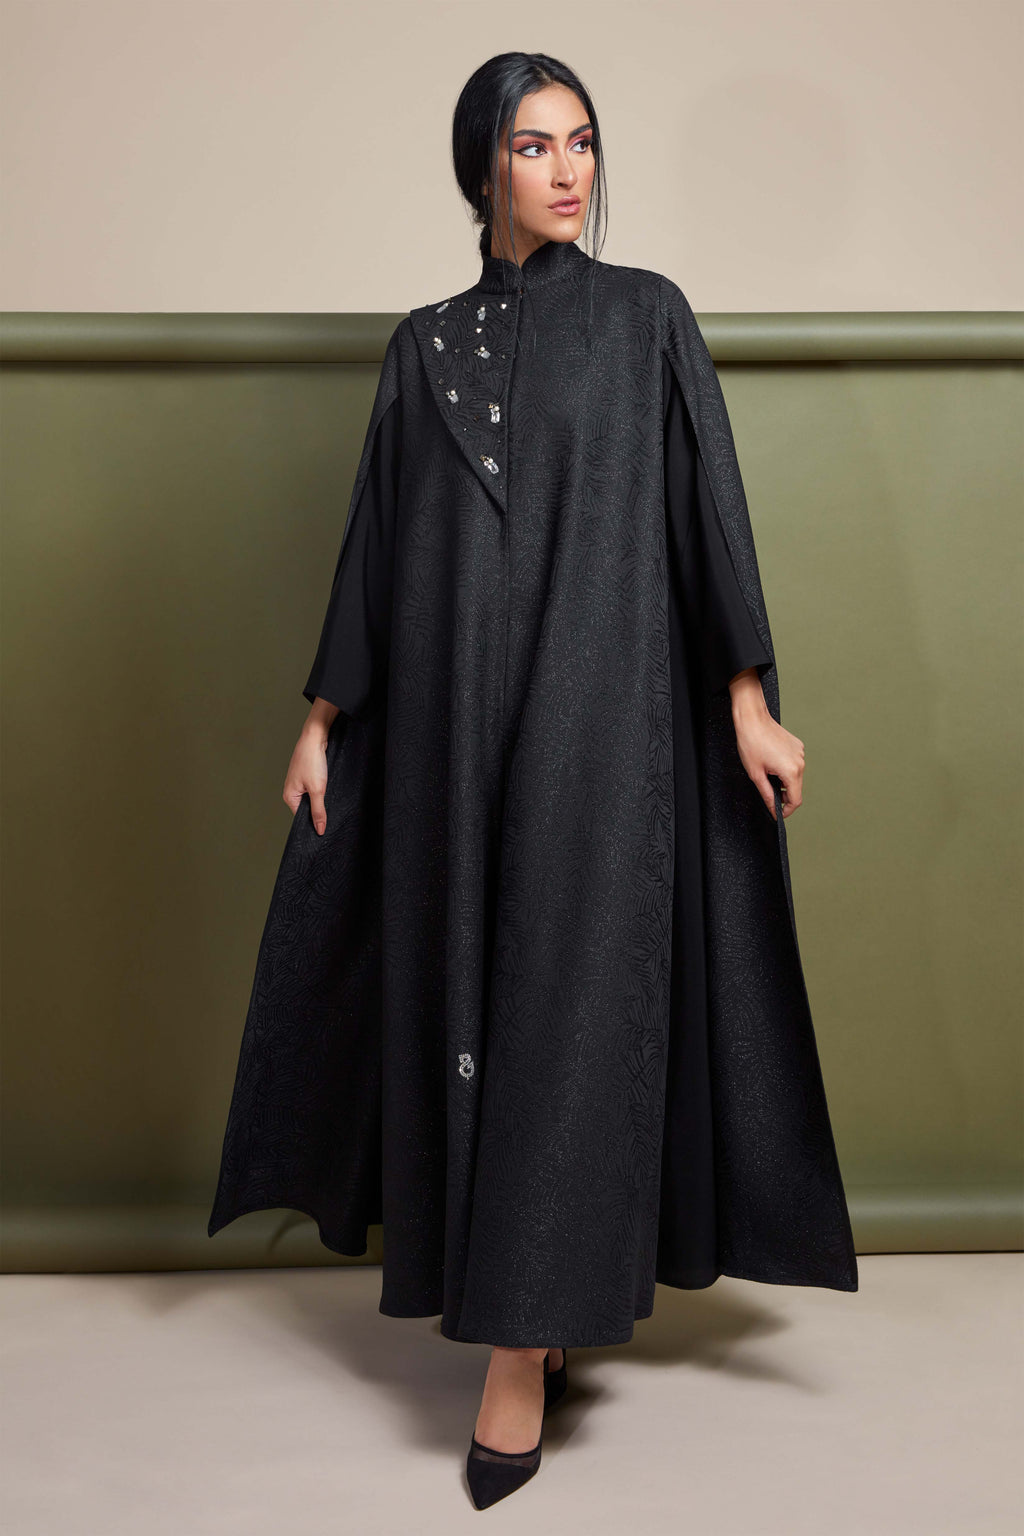 BLACK FRENCH JACQUARD CRYSTALIZED ABAYA.